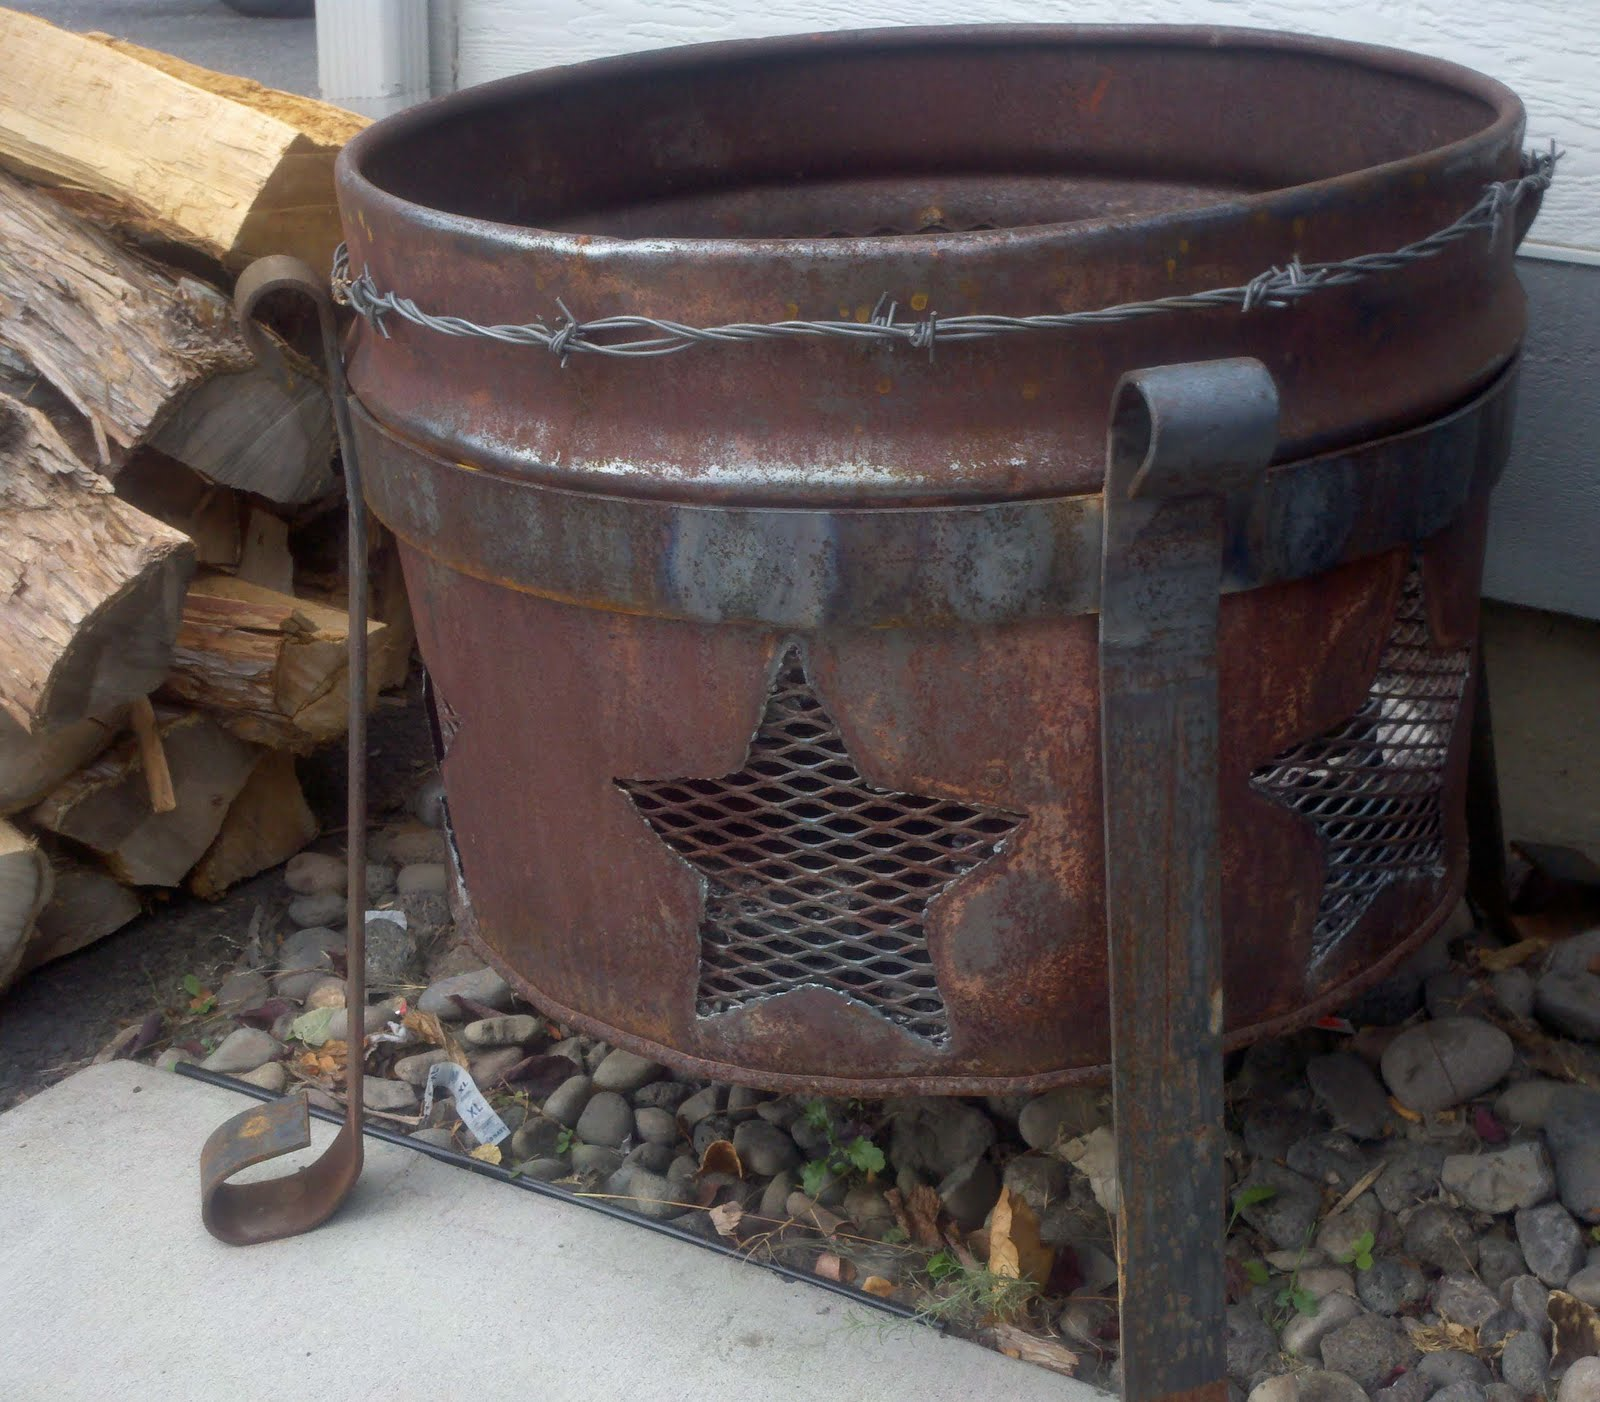 Creating Your Own Fire Pit